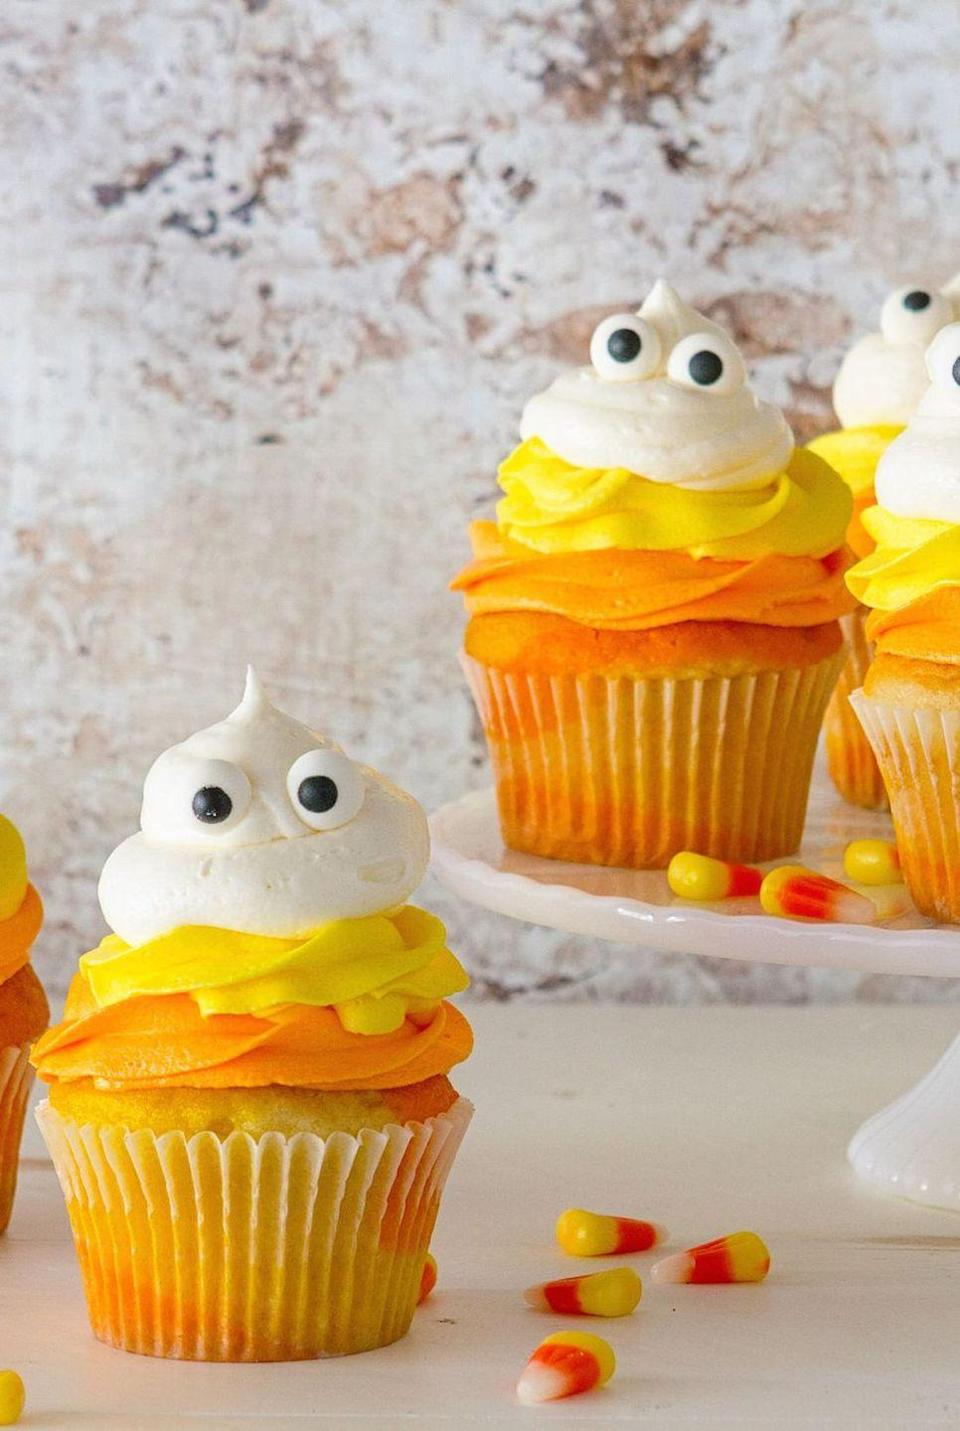 """<p>Combine two of Halloween's finest — candy corn and ghosts — in these colorful vanilla cupcakes. </p><p><em><a href=""""https://www.delish.com/holiday-recipes/halloween/videos/a44373/candy-corn-cupcakes/"""" rel=""""nofollow noopener"""" target=""""_blank"""" data-ylk=""""slk:Get the recipe from Delish »"""" class=""""link rapid-noclick-resp"""">Get the recipe from Delish »</a></em><br></p>"""